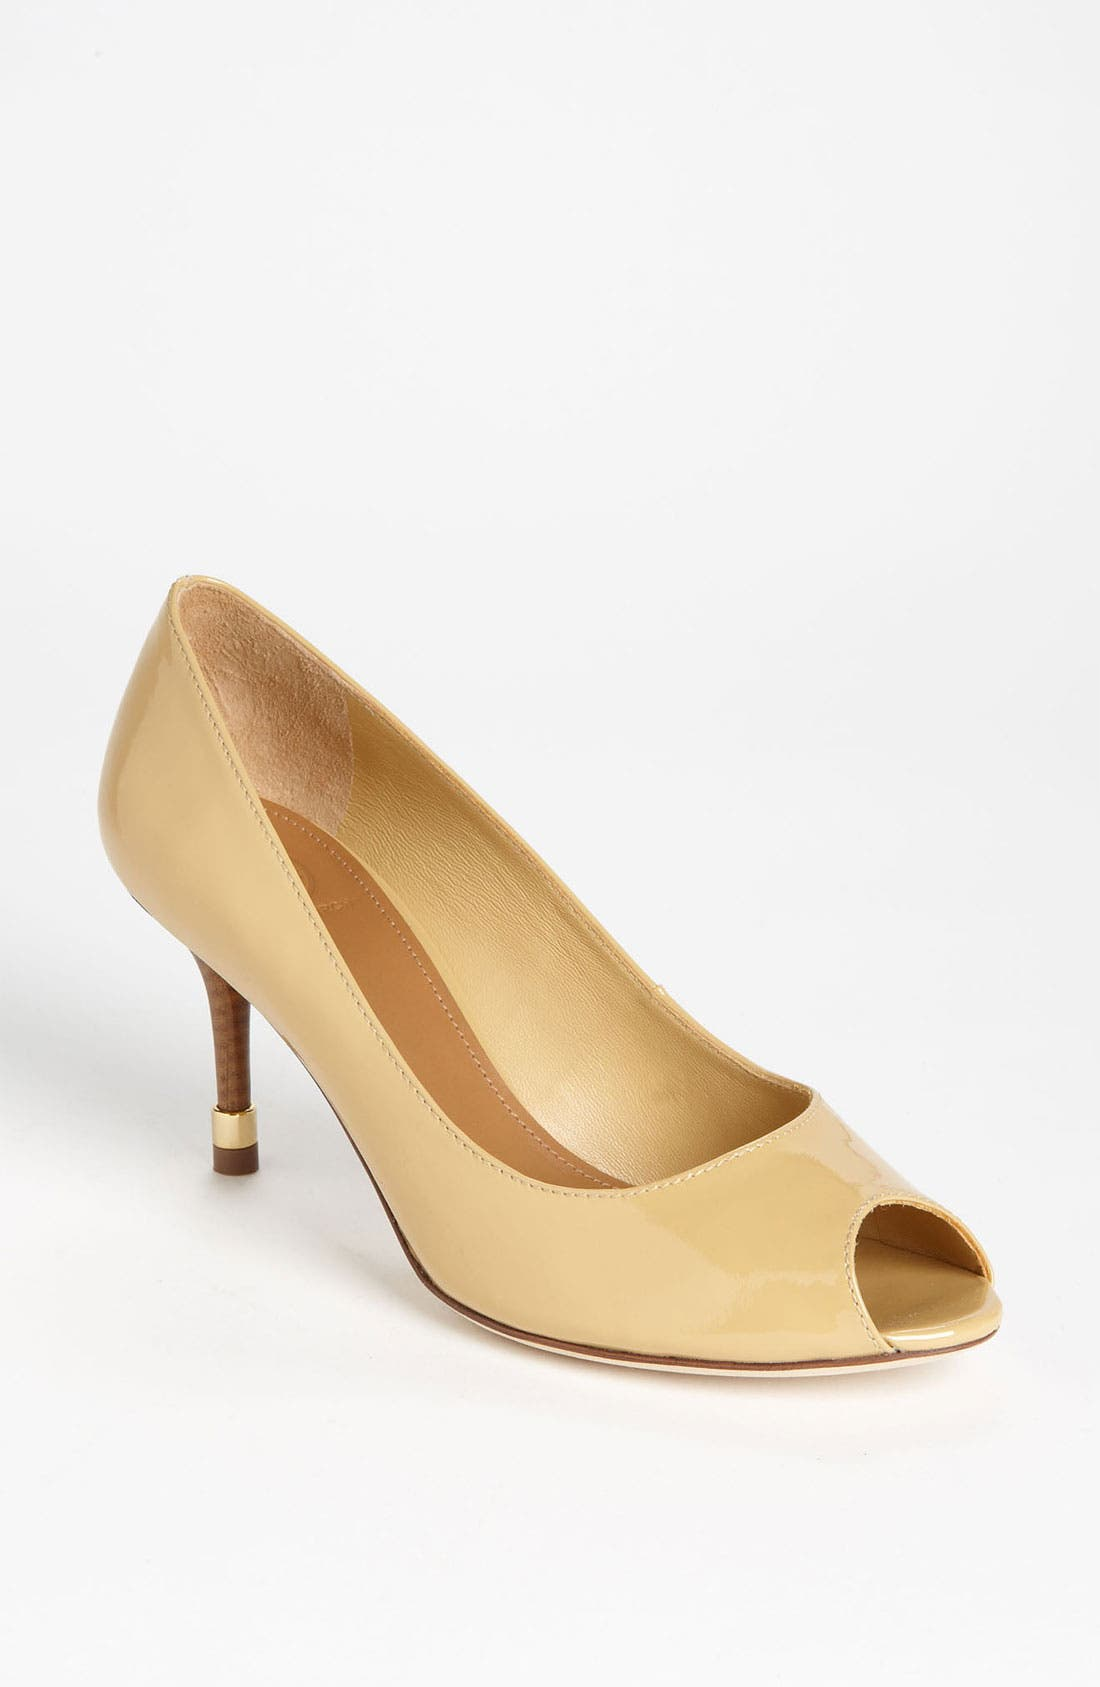 Main Image - Tory Burch 'Rea' Pump